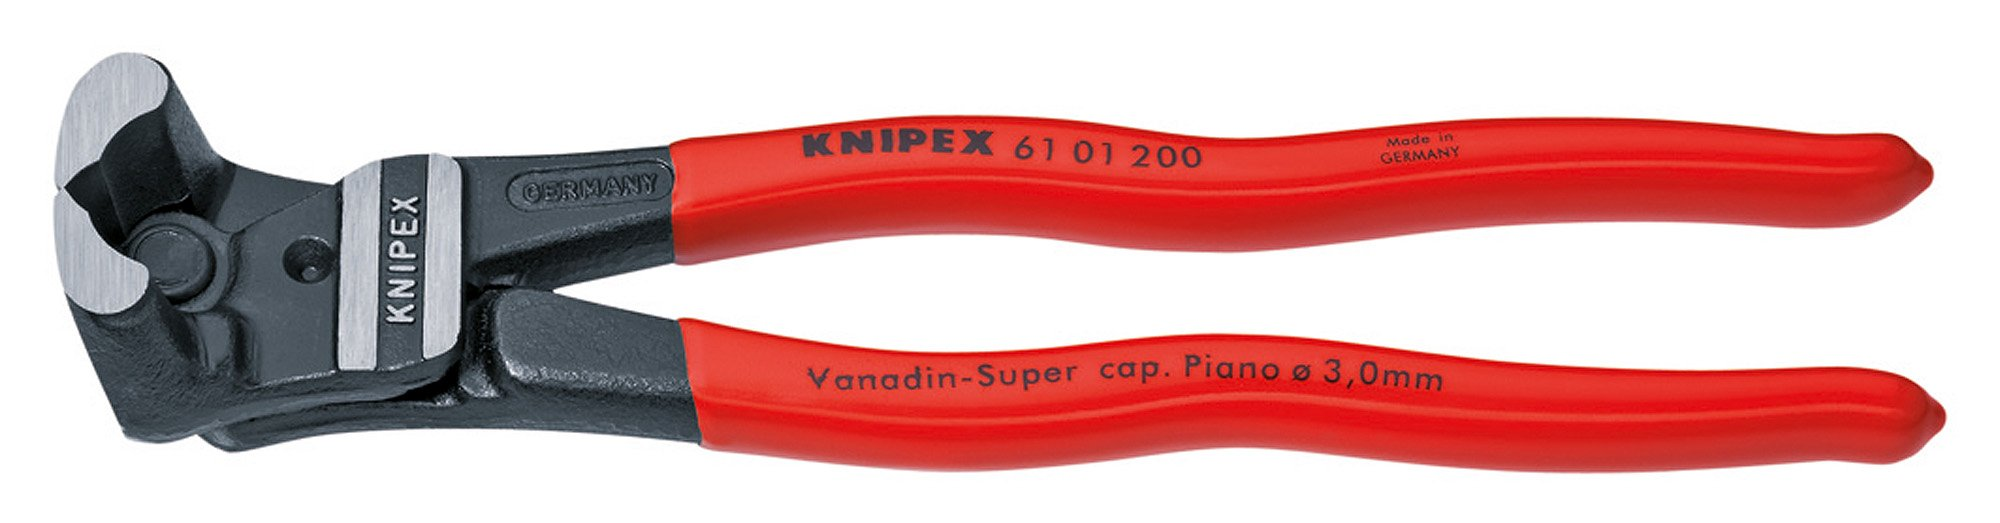 Knipex Bolt End Cutting Nippers 61 01 200